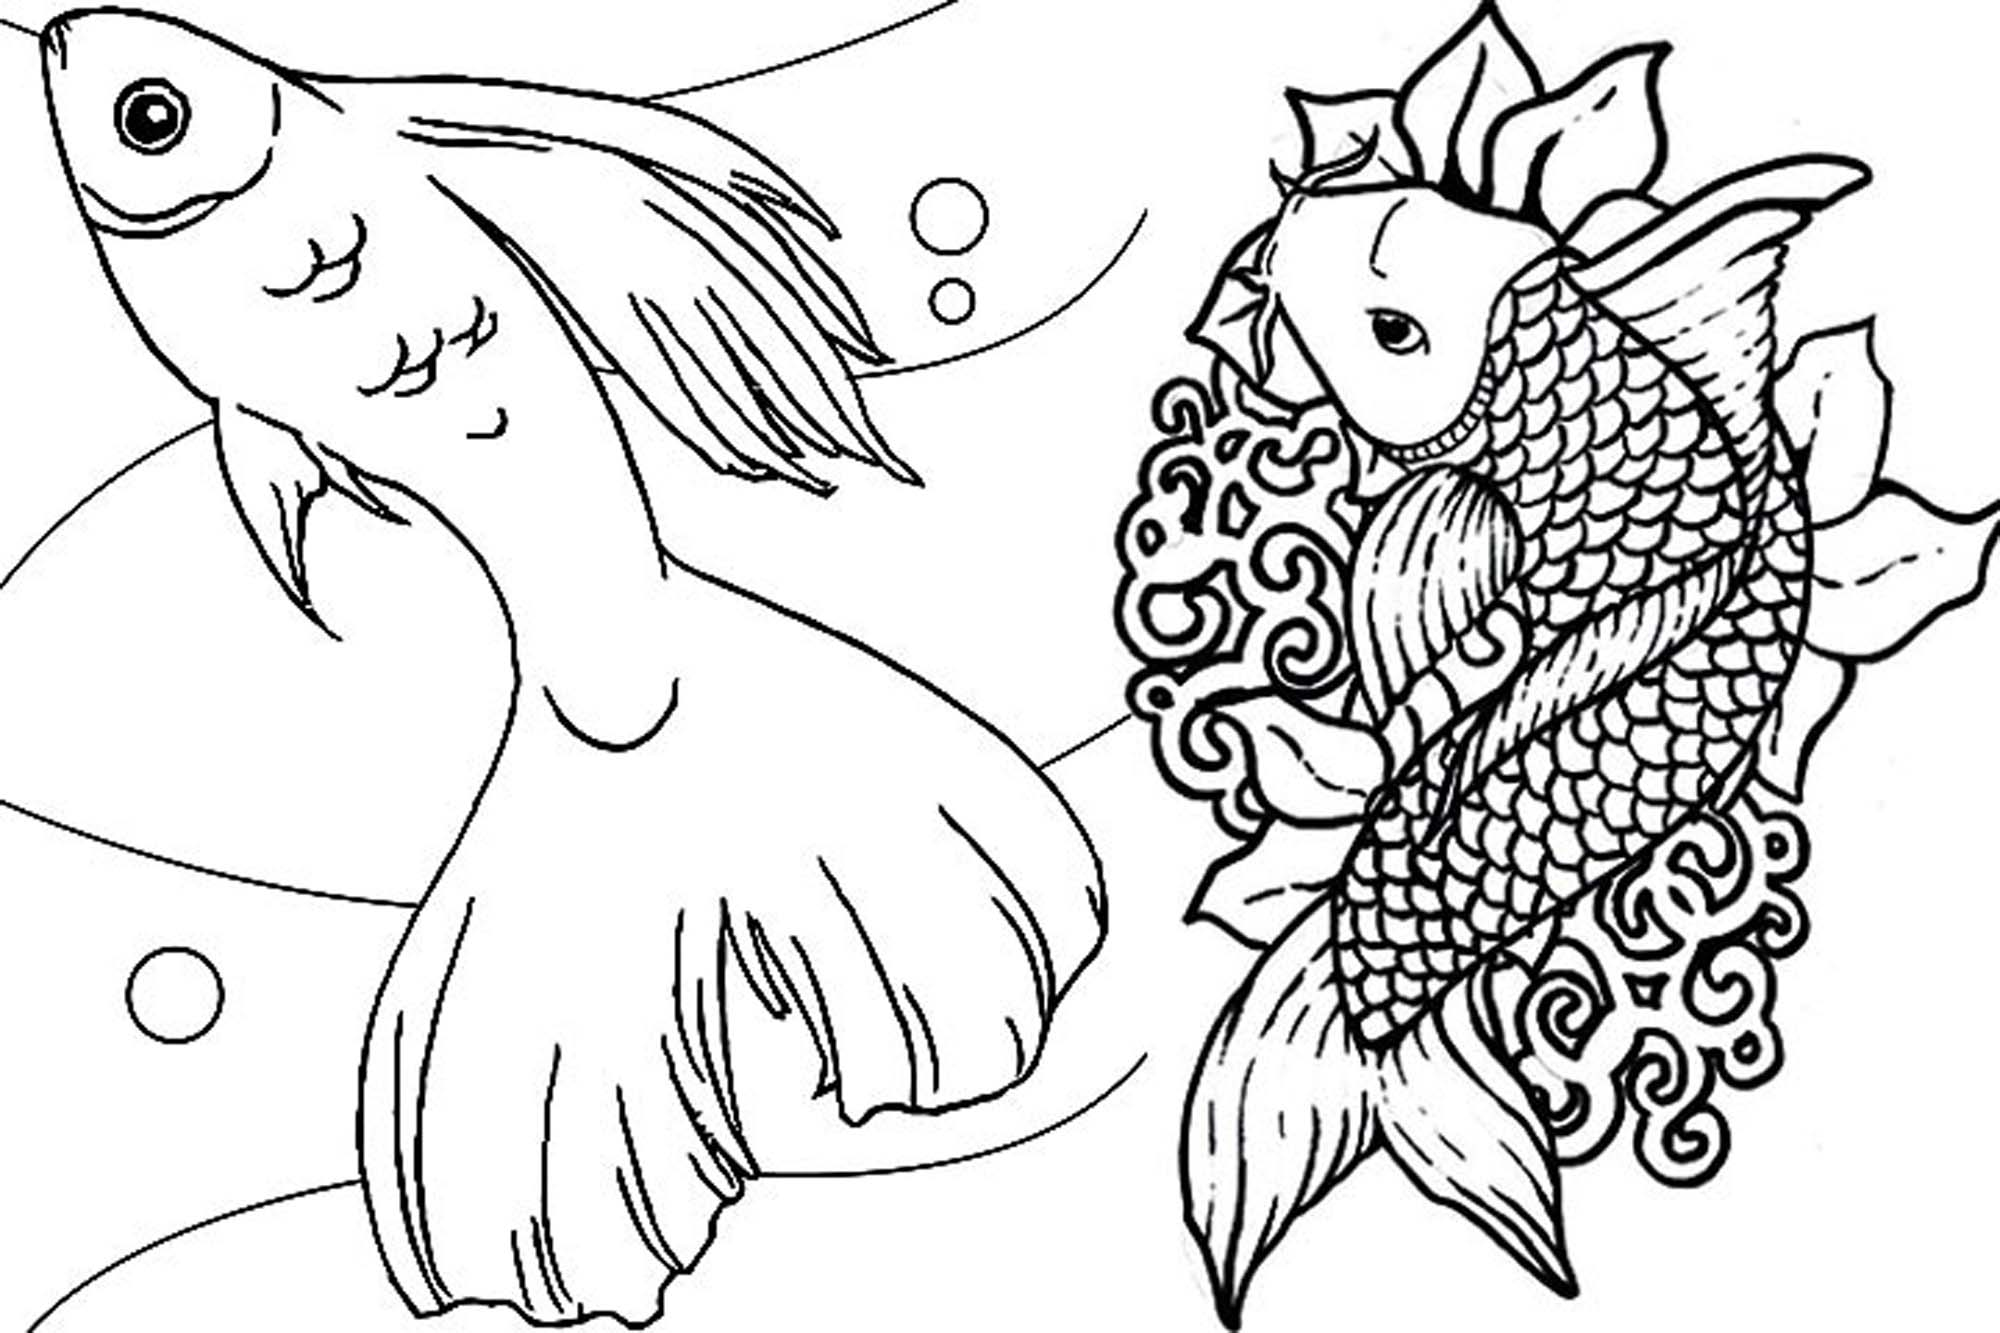 fish coloring pages to print - photo#45